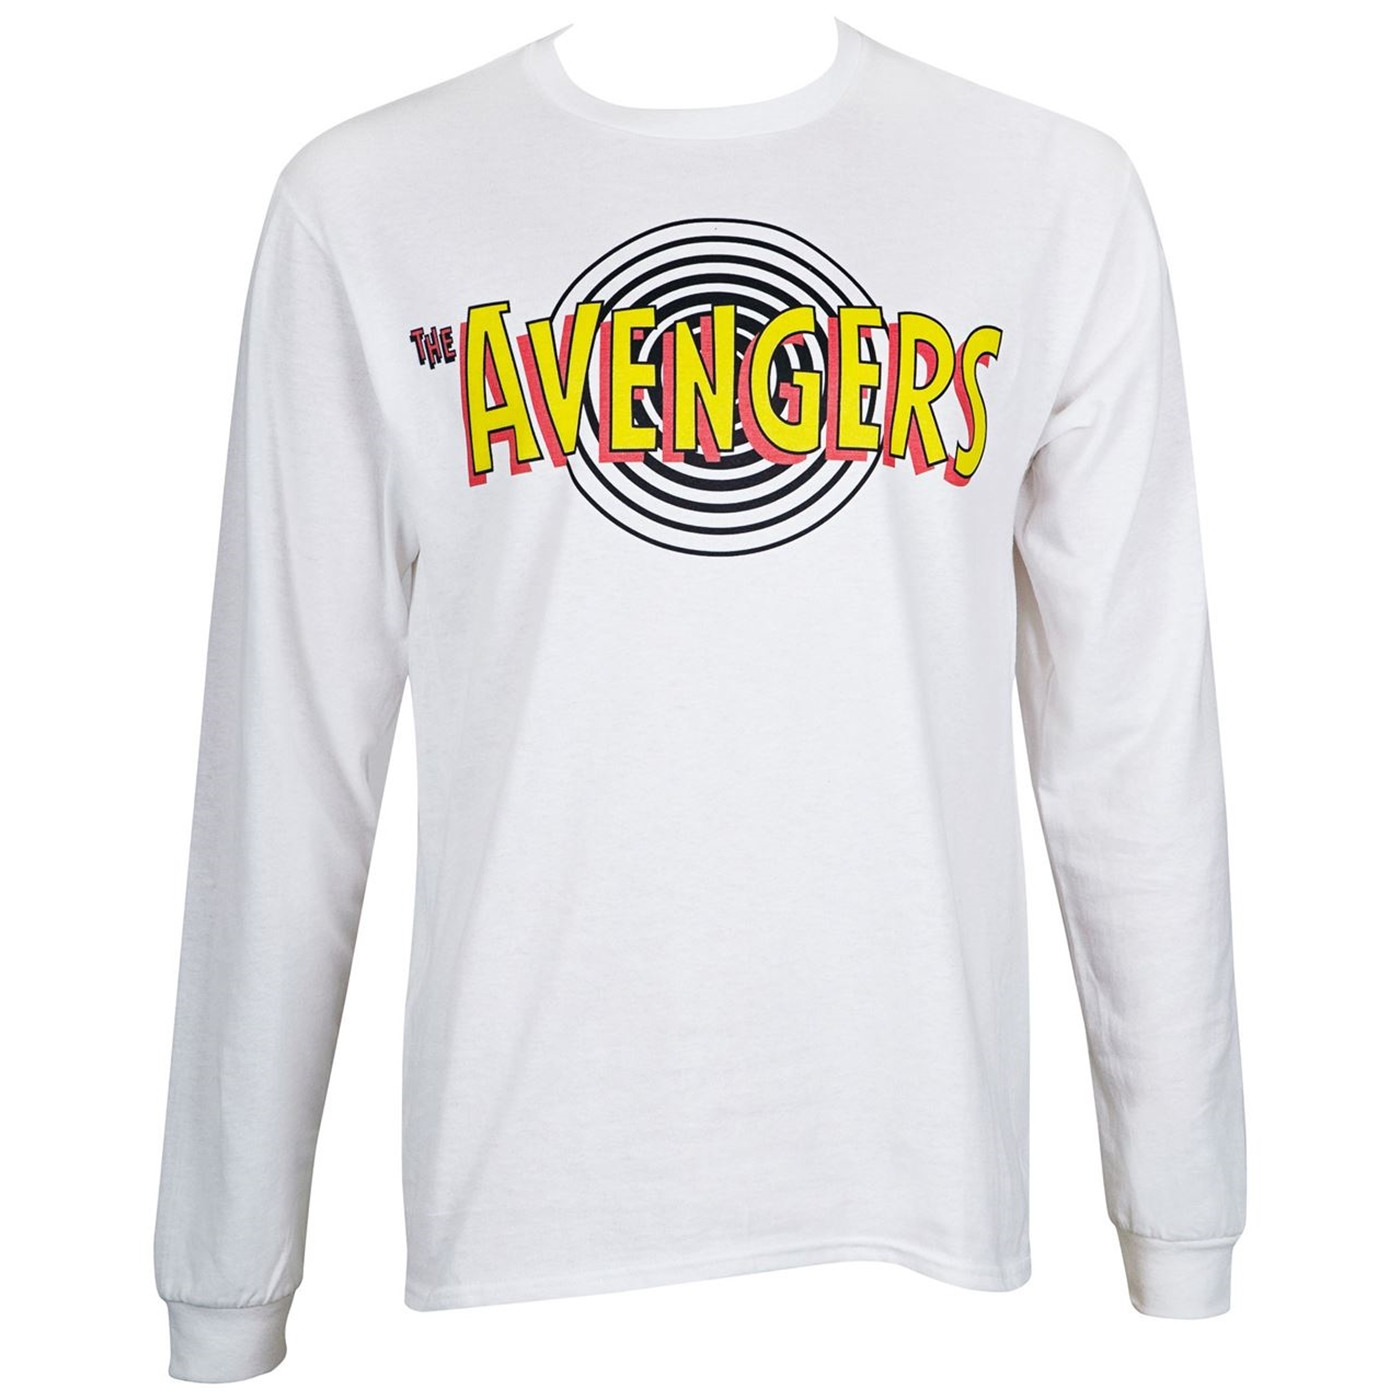 Avengers Classic Marvel Masterworks White Long Sleeve Shirt